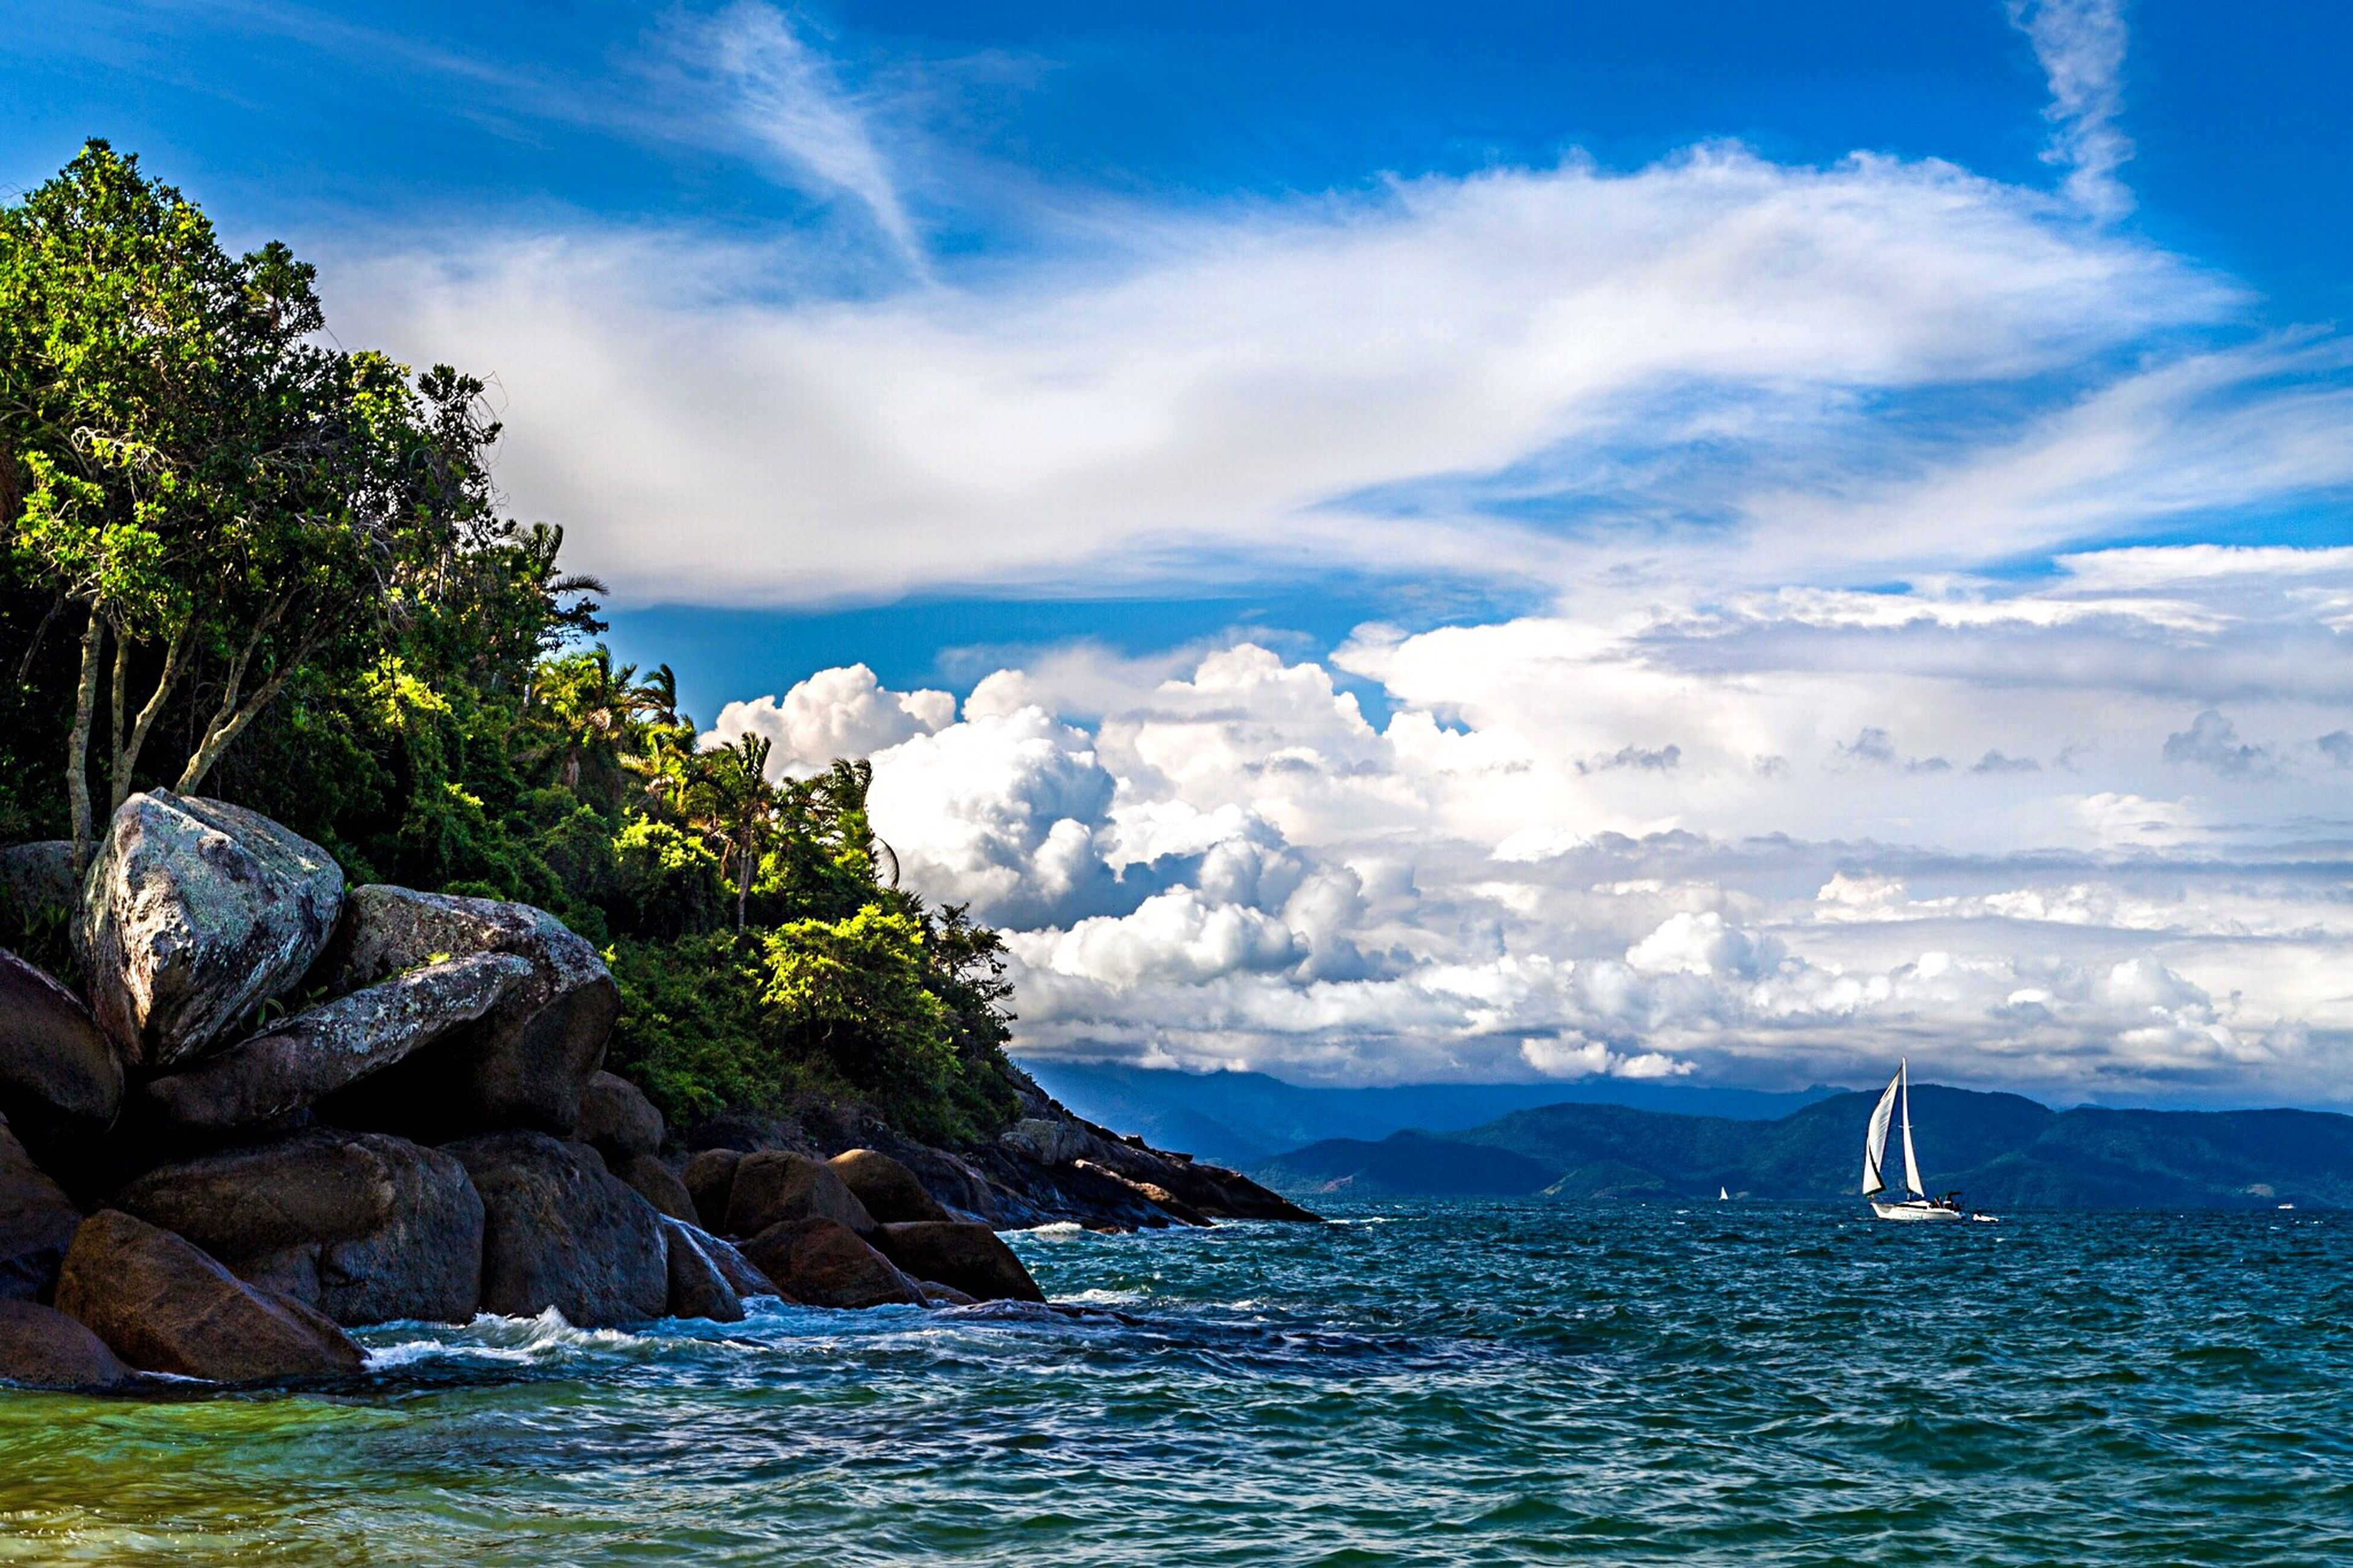 water, sea, sky, waterfront, mountain, scenics, tranquil scene, beauty in nature, transportation, tranquility, cloud - sky, nautical vessel, cloud, nature, mode of transport, blue, mountain range, rock - object, boat, day